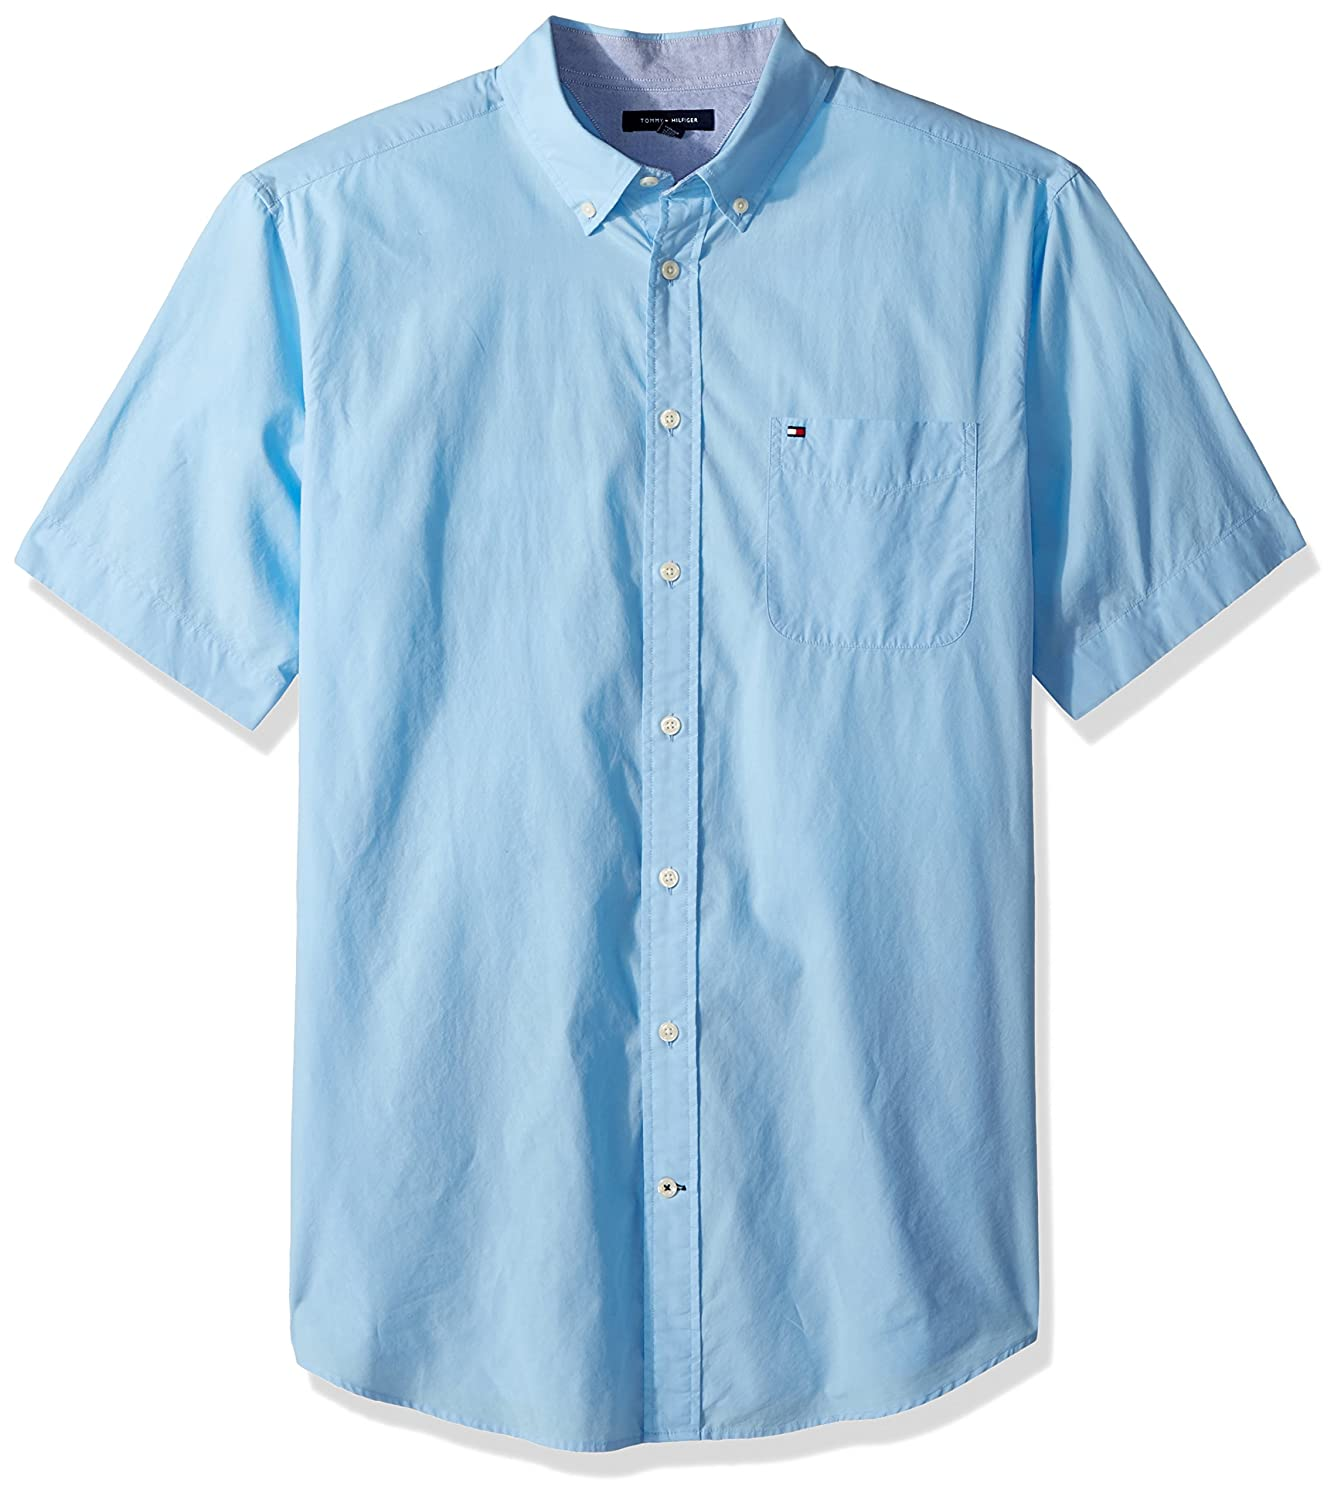 466cc6d2e8ac93 Amazon.com  Tommy Hilfiger Men s Big and Tall Button Down Short Sleeve Shirt  Maxwell  Clothing